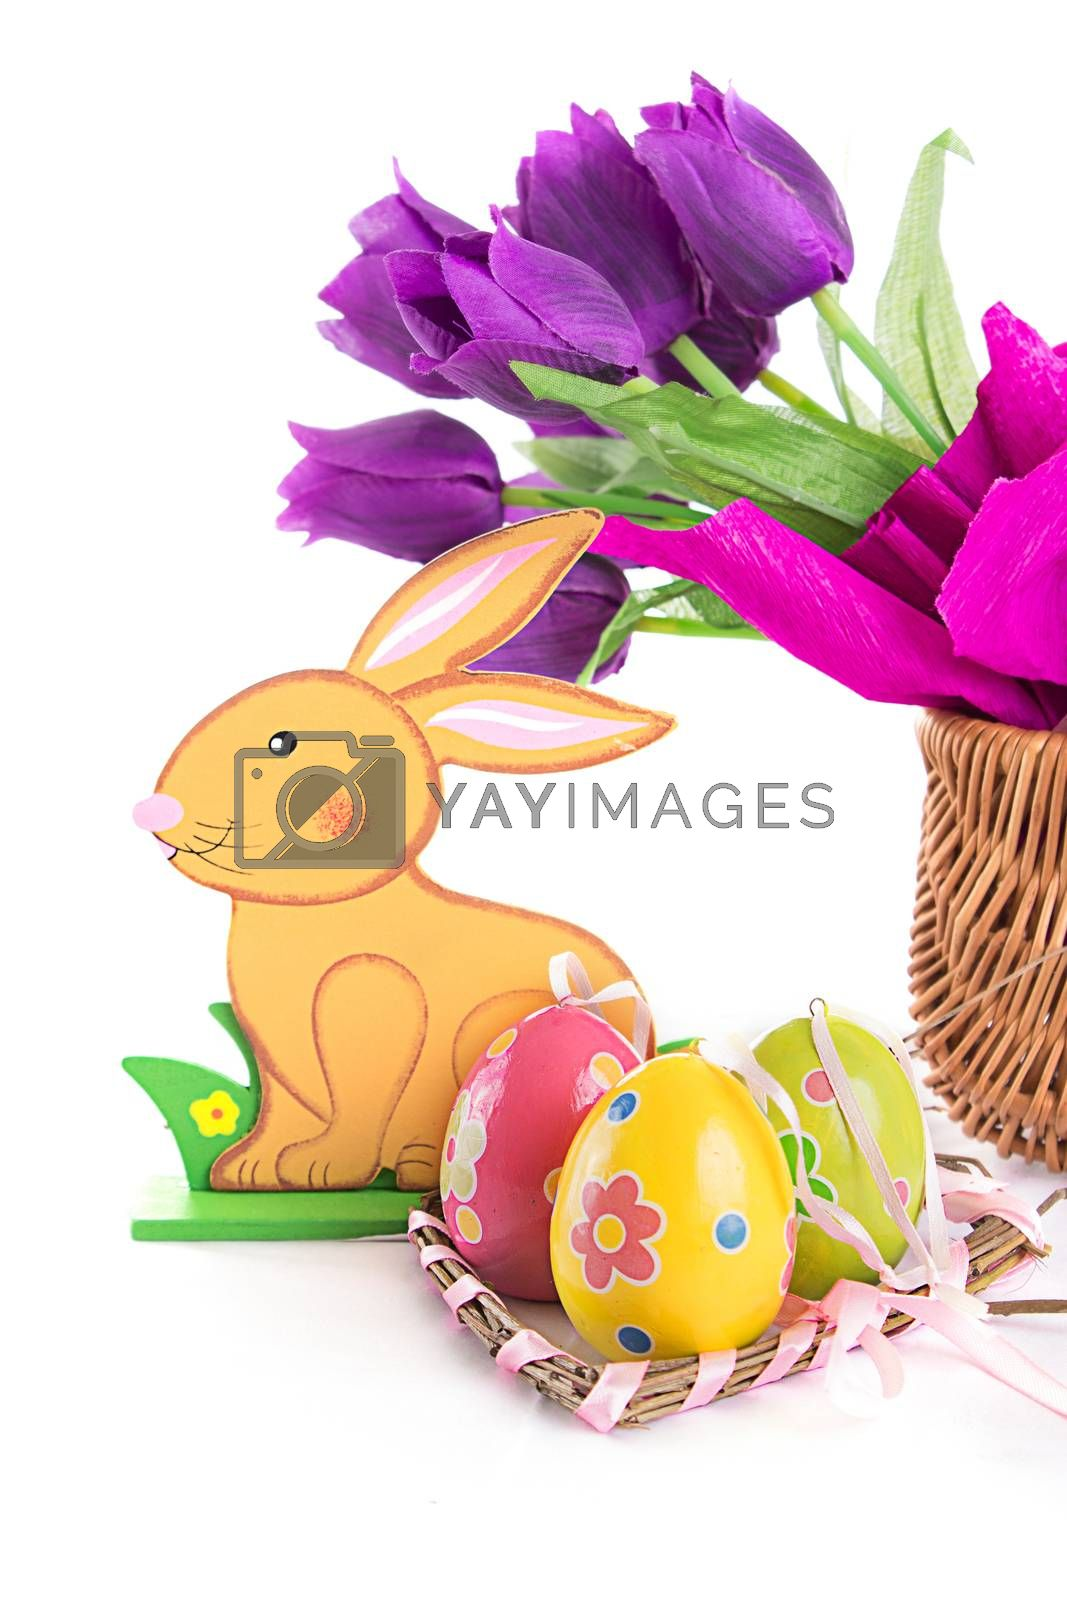 Royalty free image of Easter decoration with rabbit, eggs and tulips by Angel_a